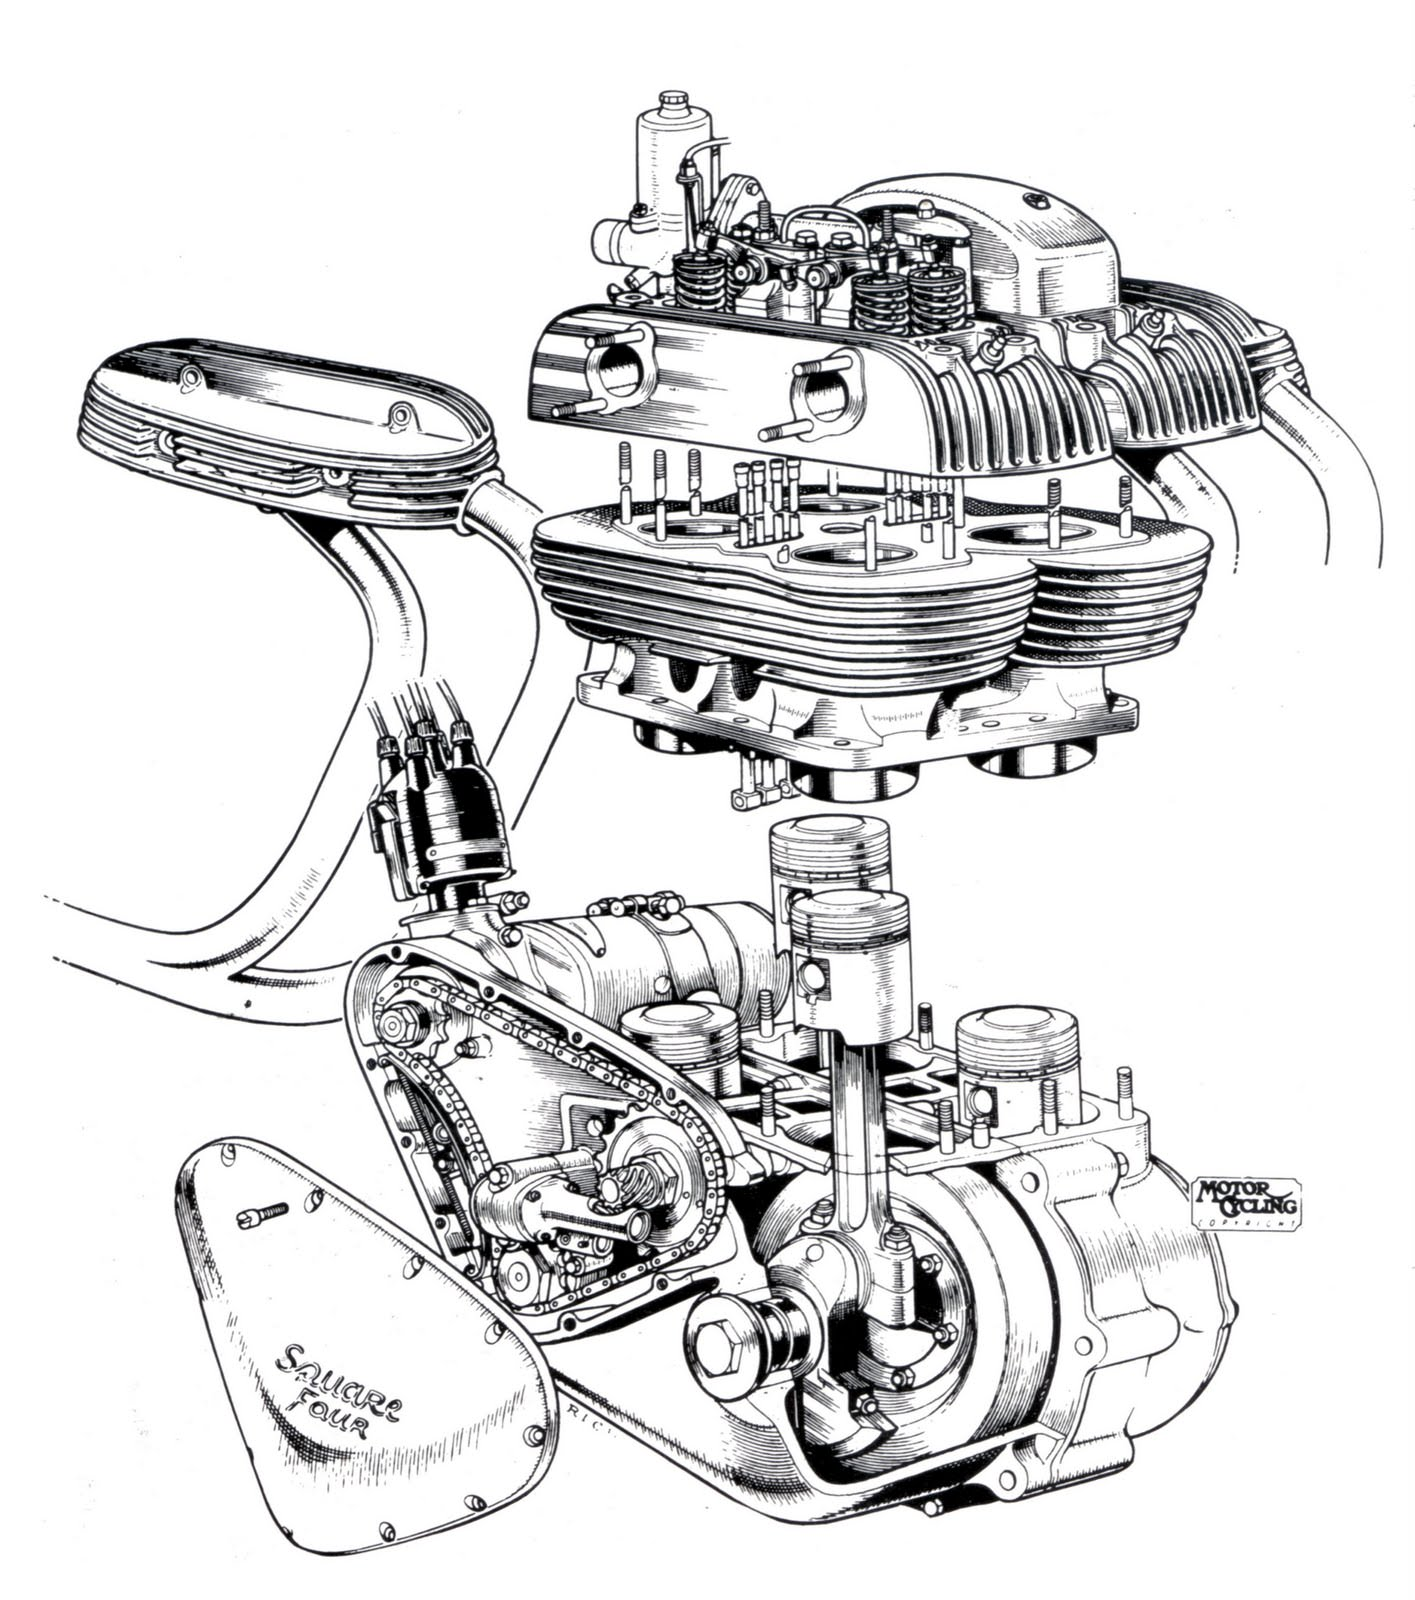 1415x1600 Ariel Square Four Wallpaper Ariel, Engine And Cutaway